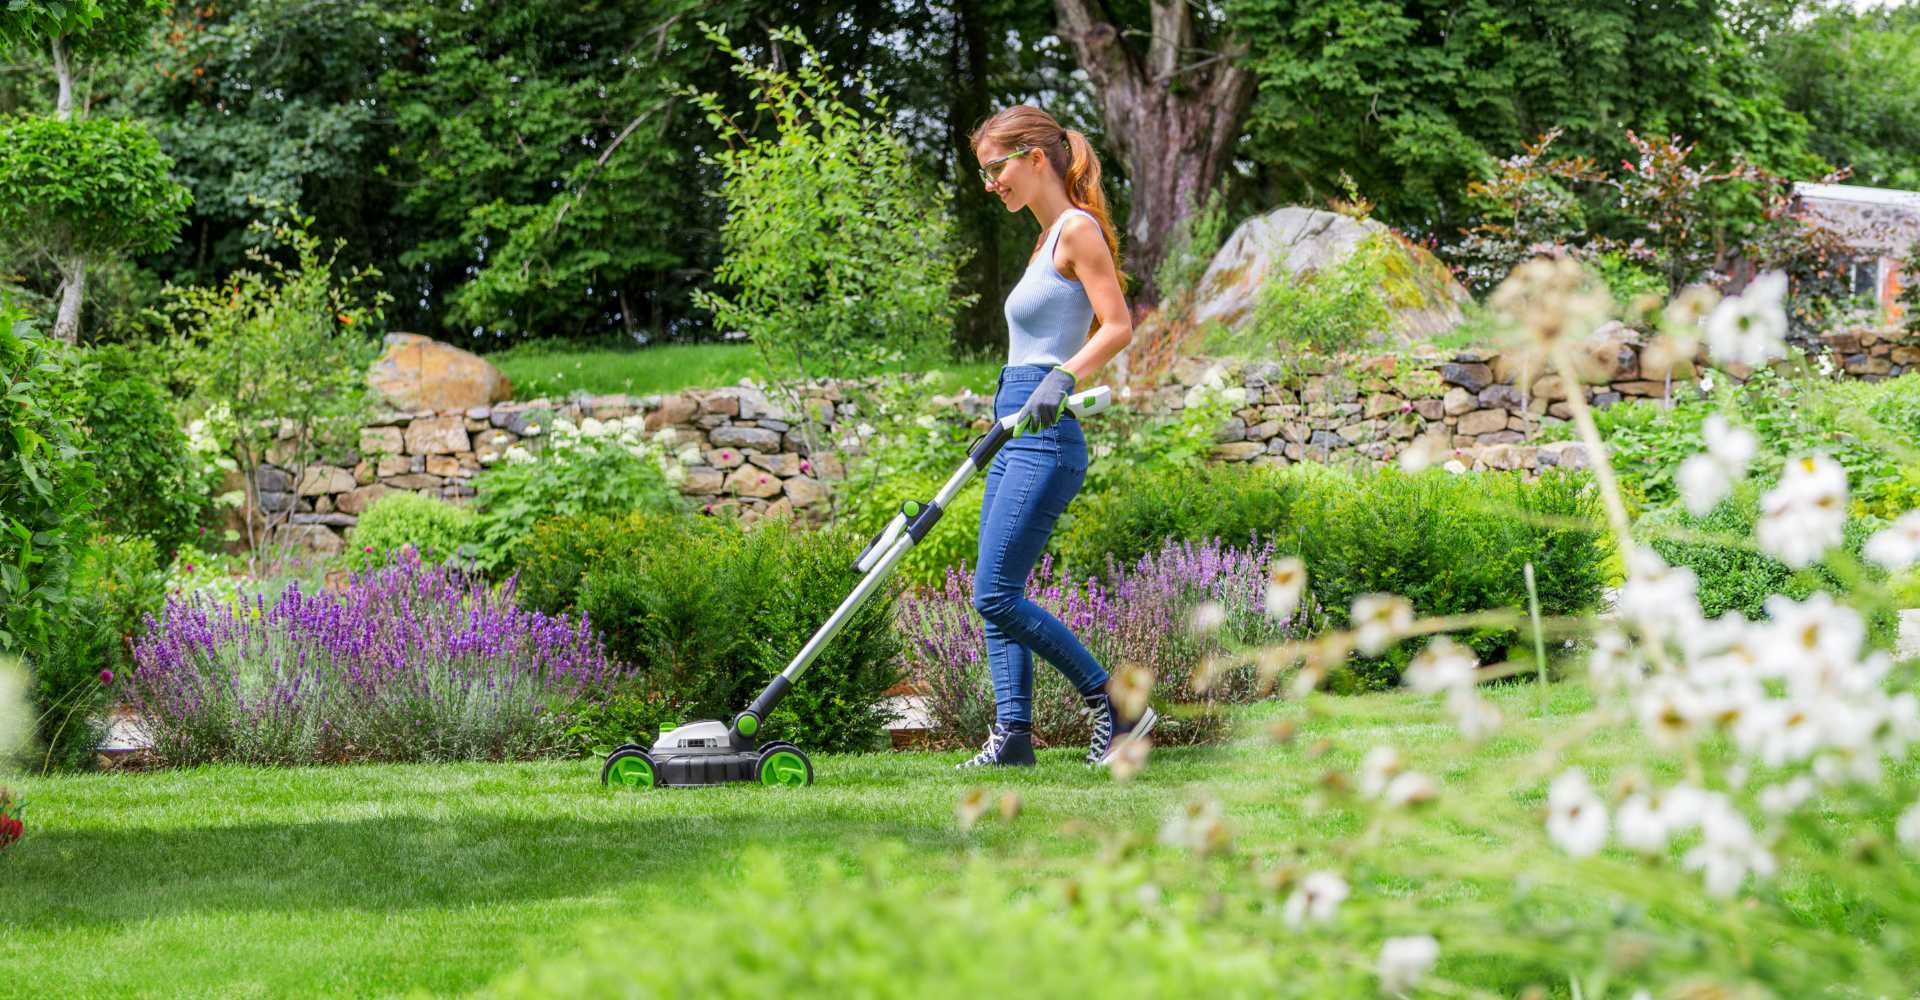 Small electric lawn mower being used by woman in garden